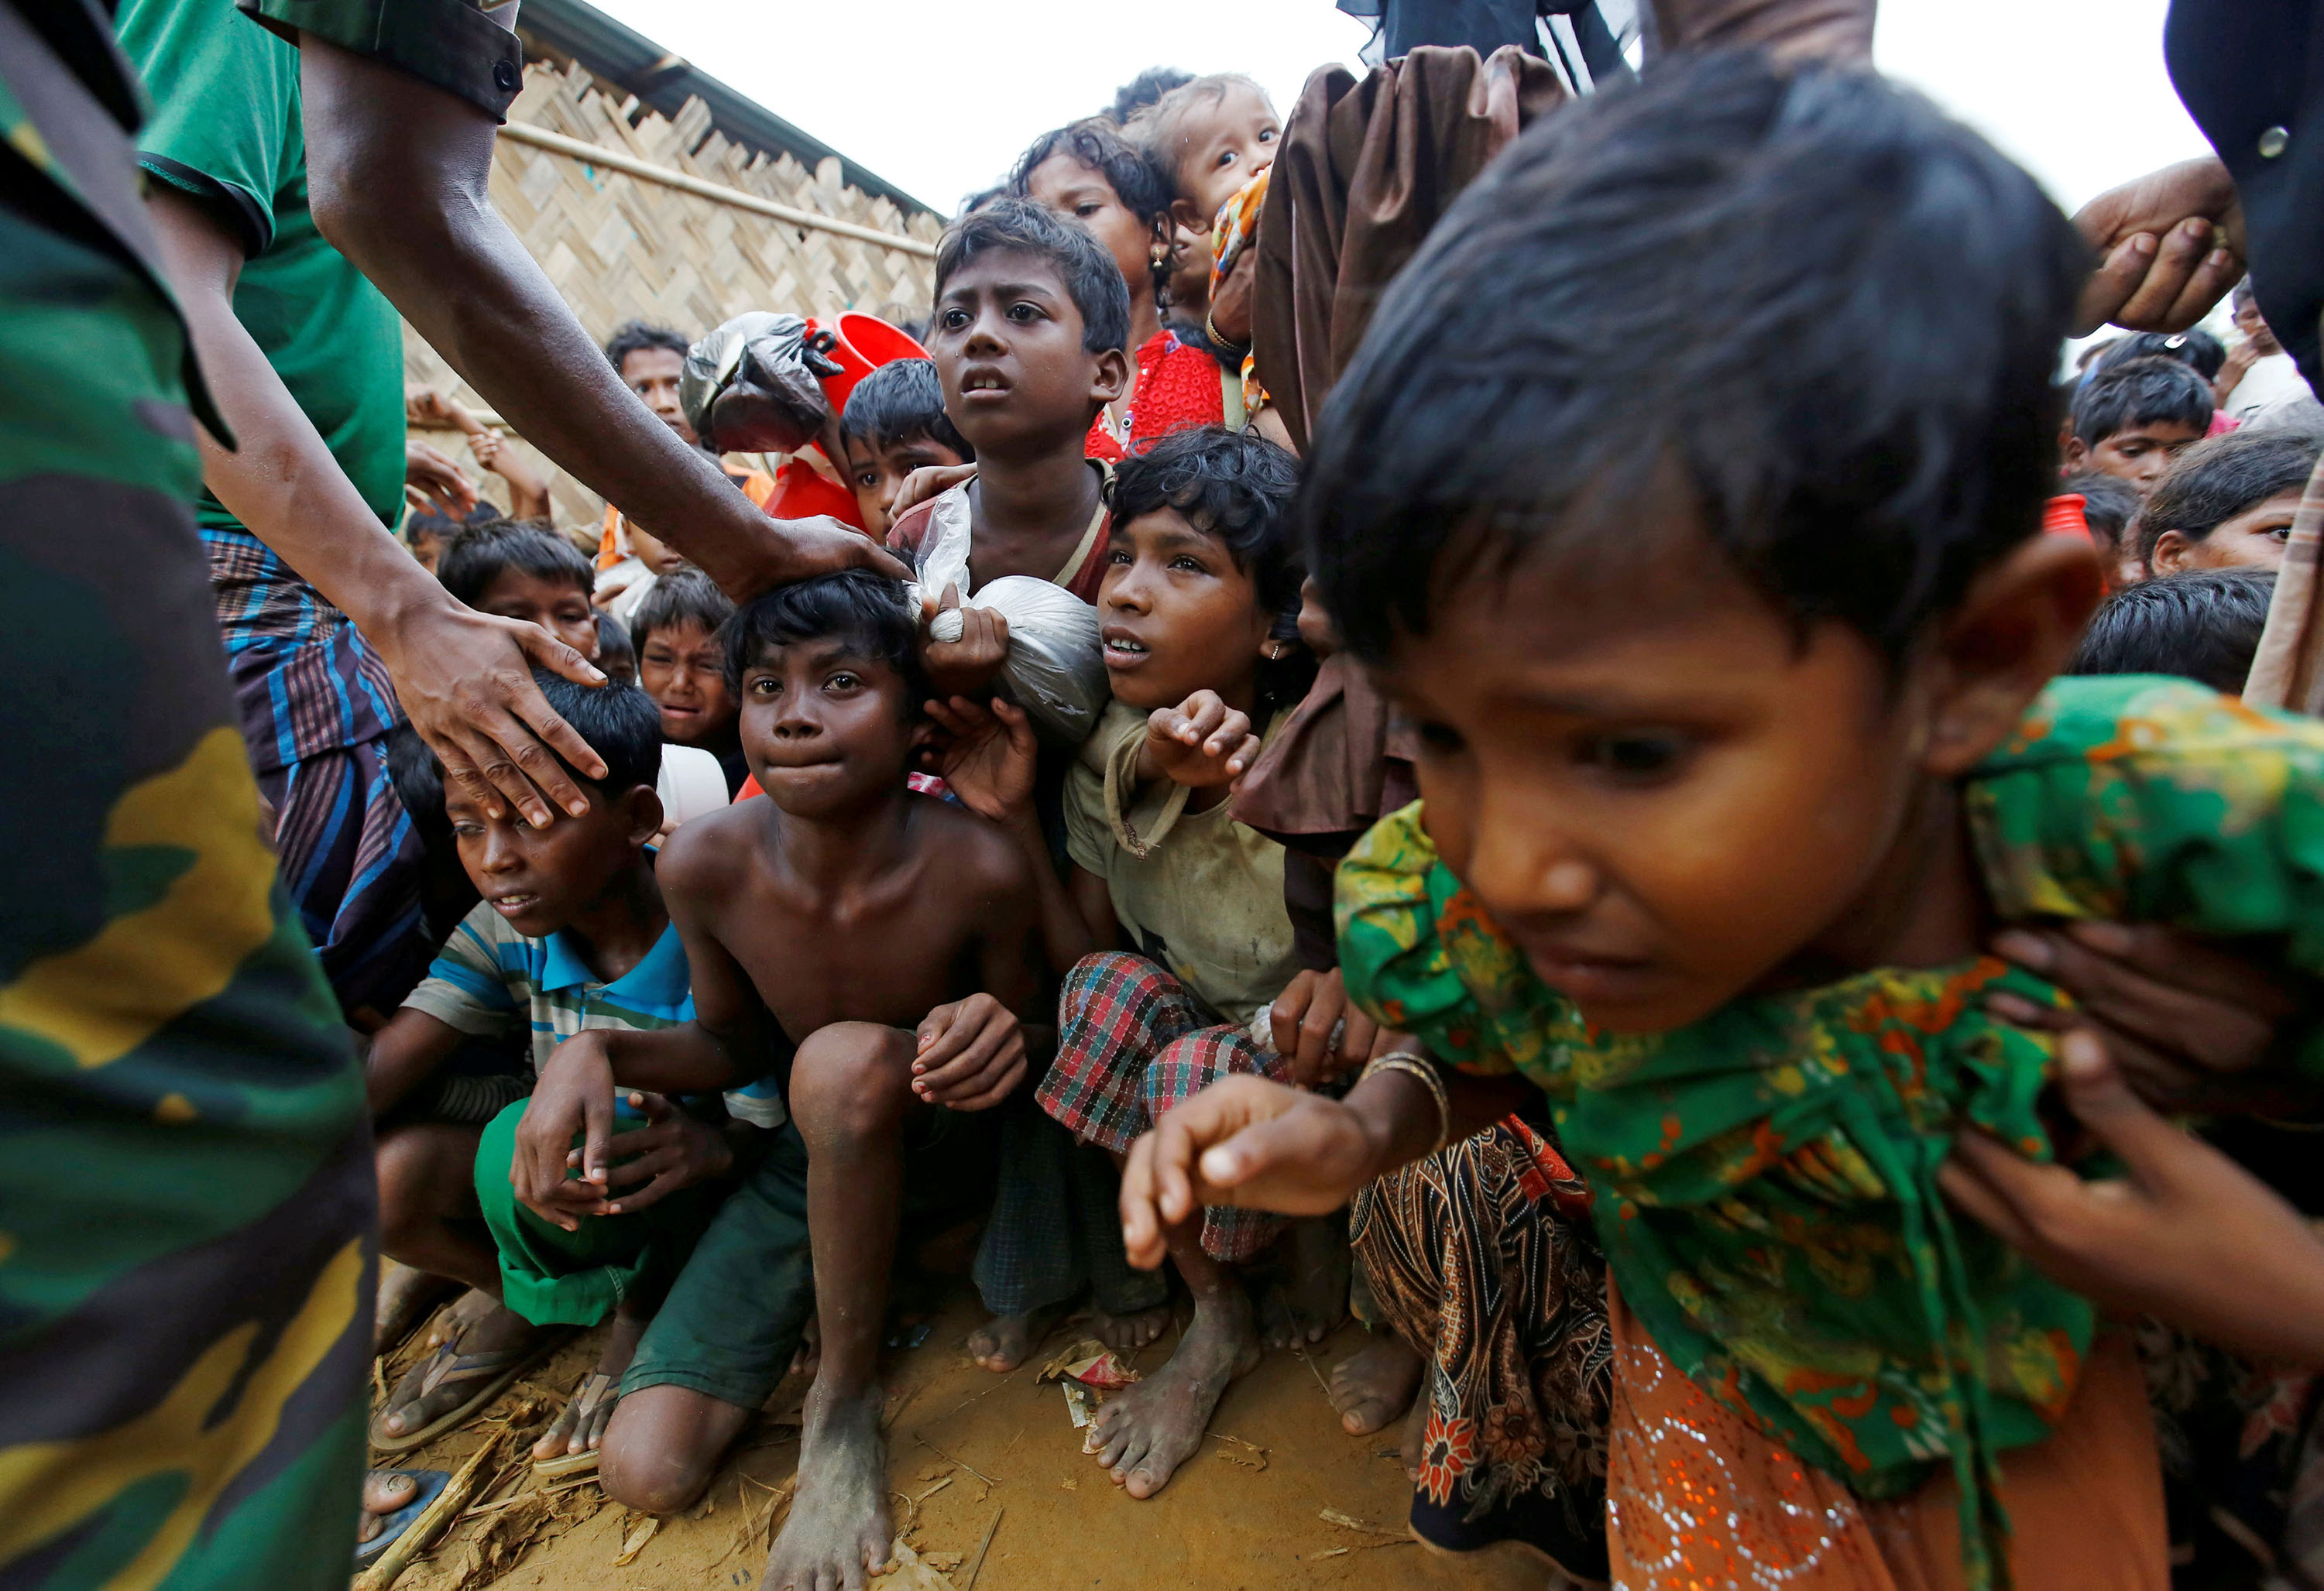 United States declares attacks on Myanmar Rohingya Muslims as 'ethnic cleansing'